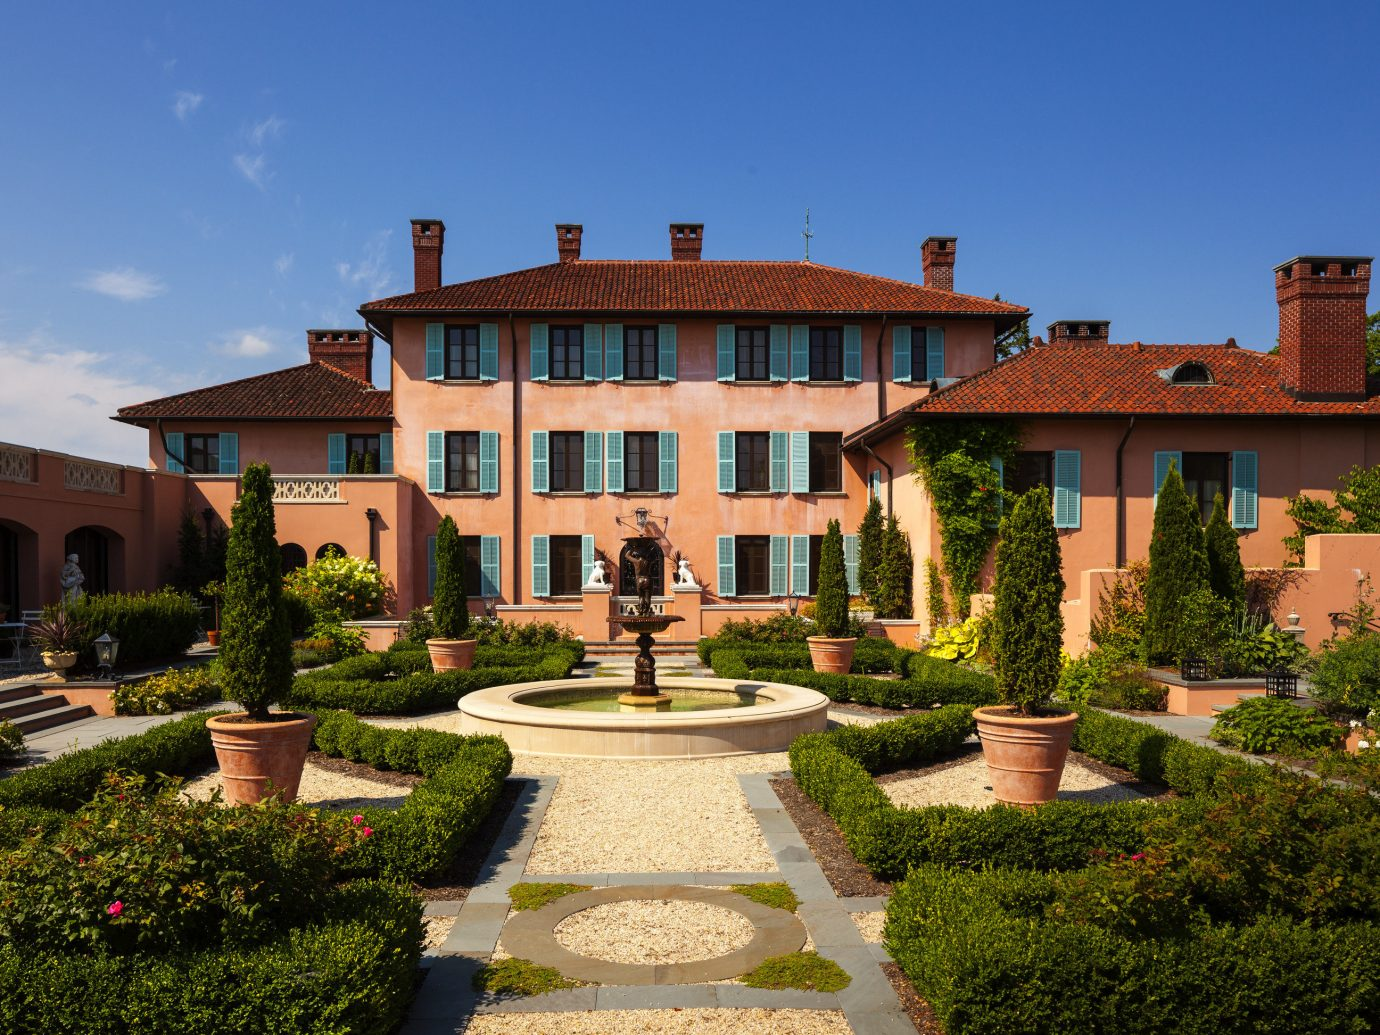 Hotels New York Romantic Hotels estate property mansion home real estate Villa house residential area sky hacienda stately home Courtyard official residence facade historic house landscaping building historic site manor house national trust for places of historic interest or natural beauty Garden roof Resort window plantation elevation landscape